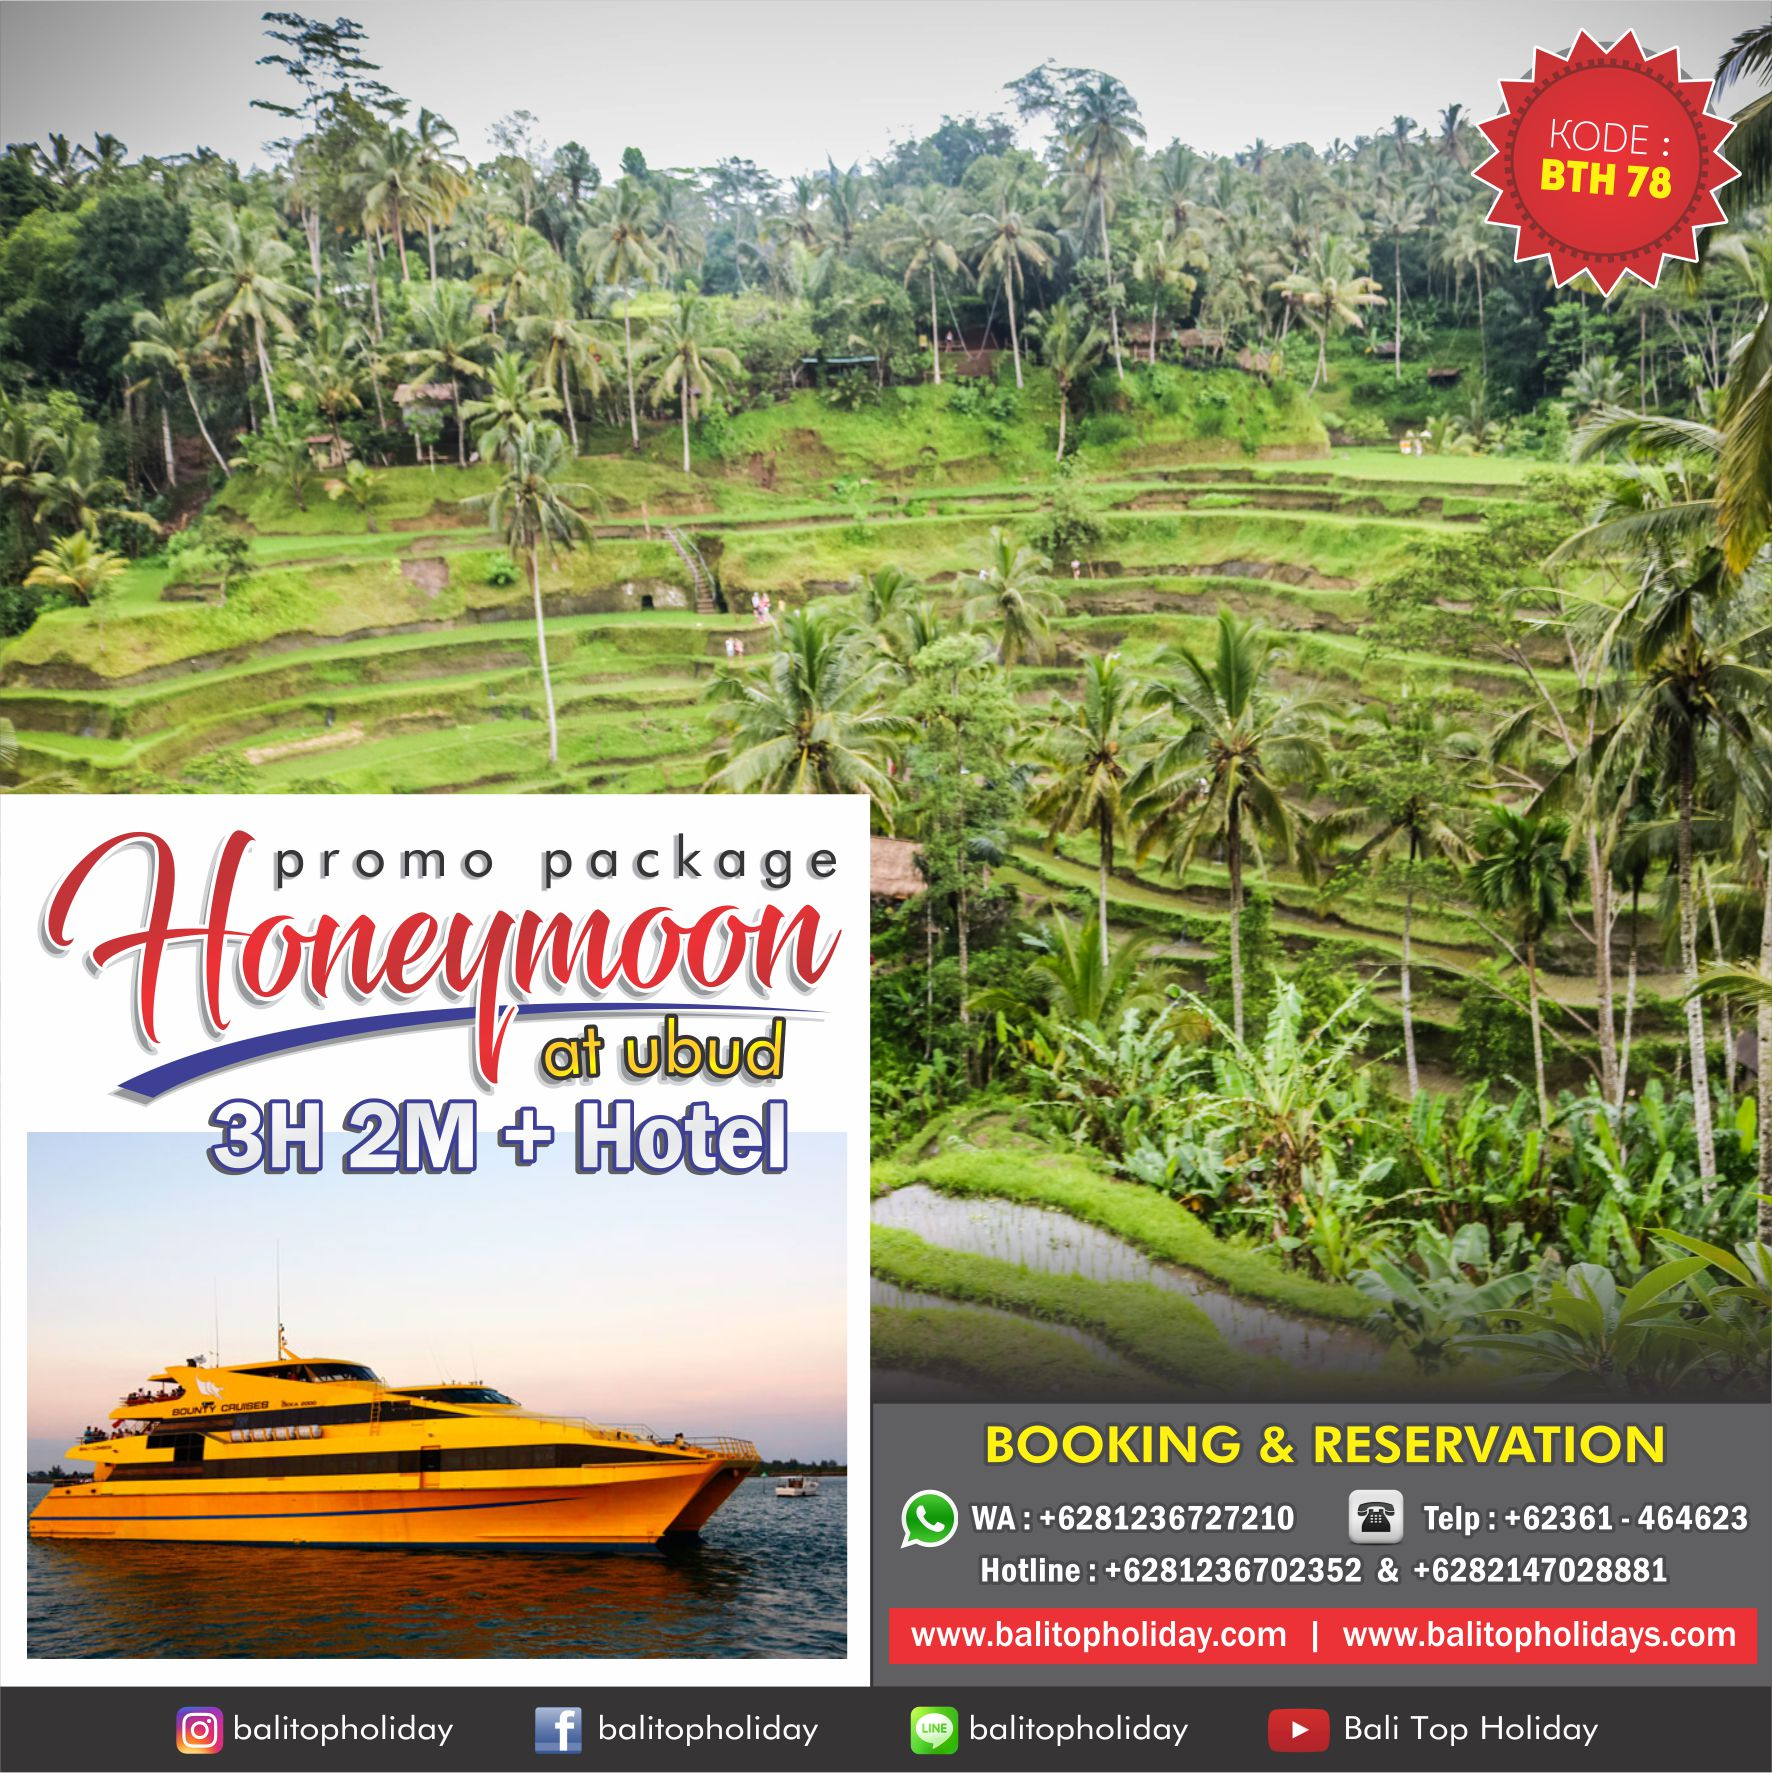 Paket Honeymoon Ubud 3H2M